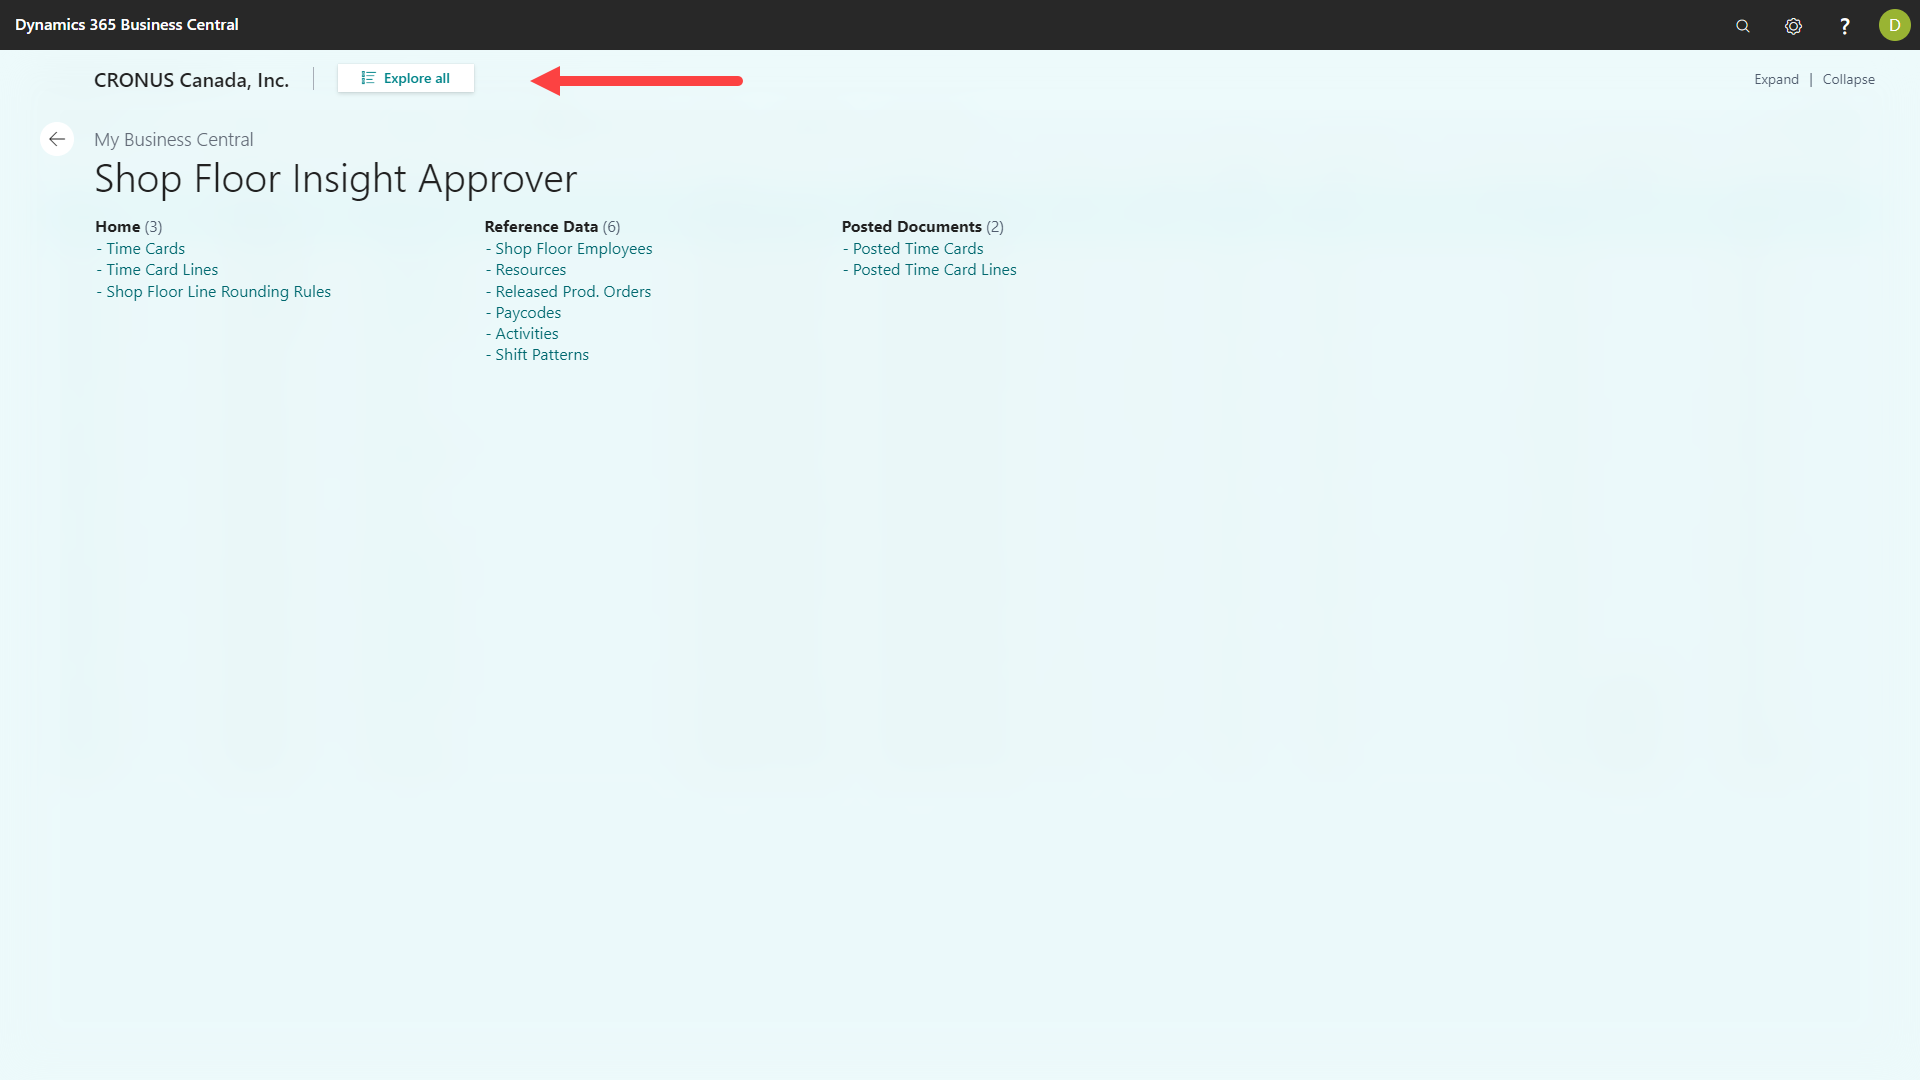 Shop Floor Insight Approver